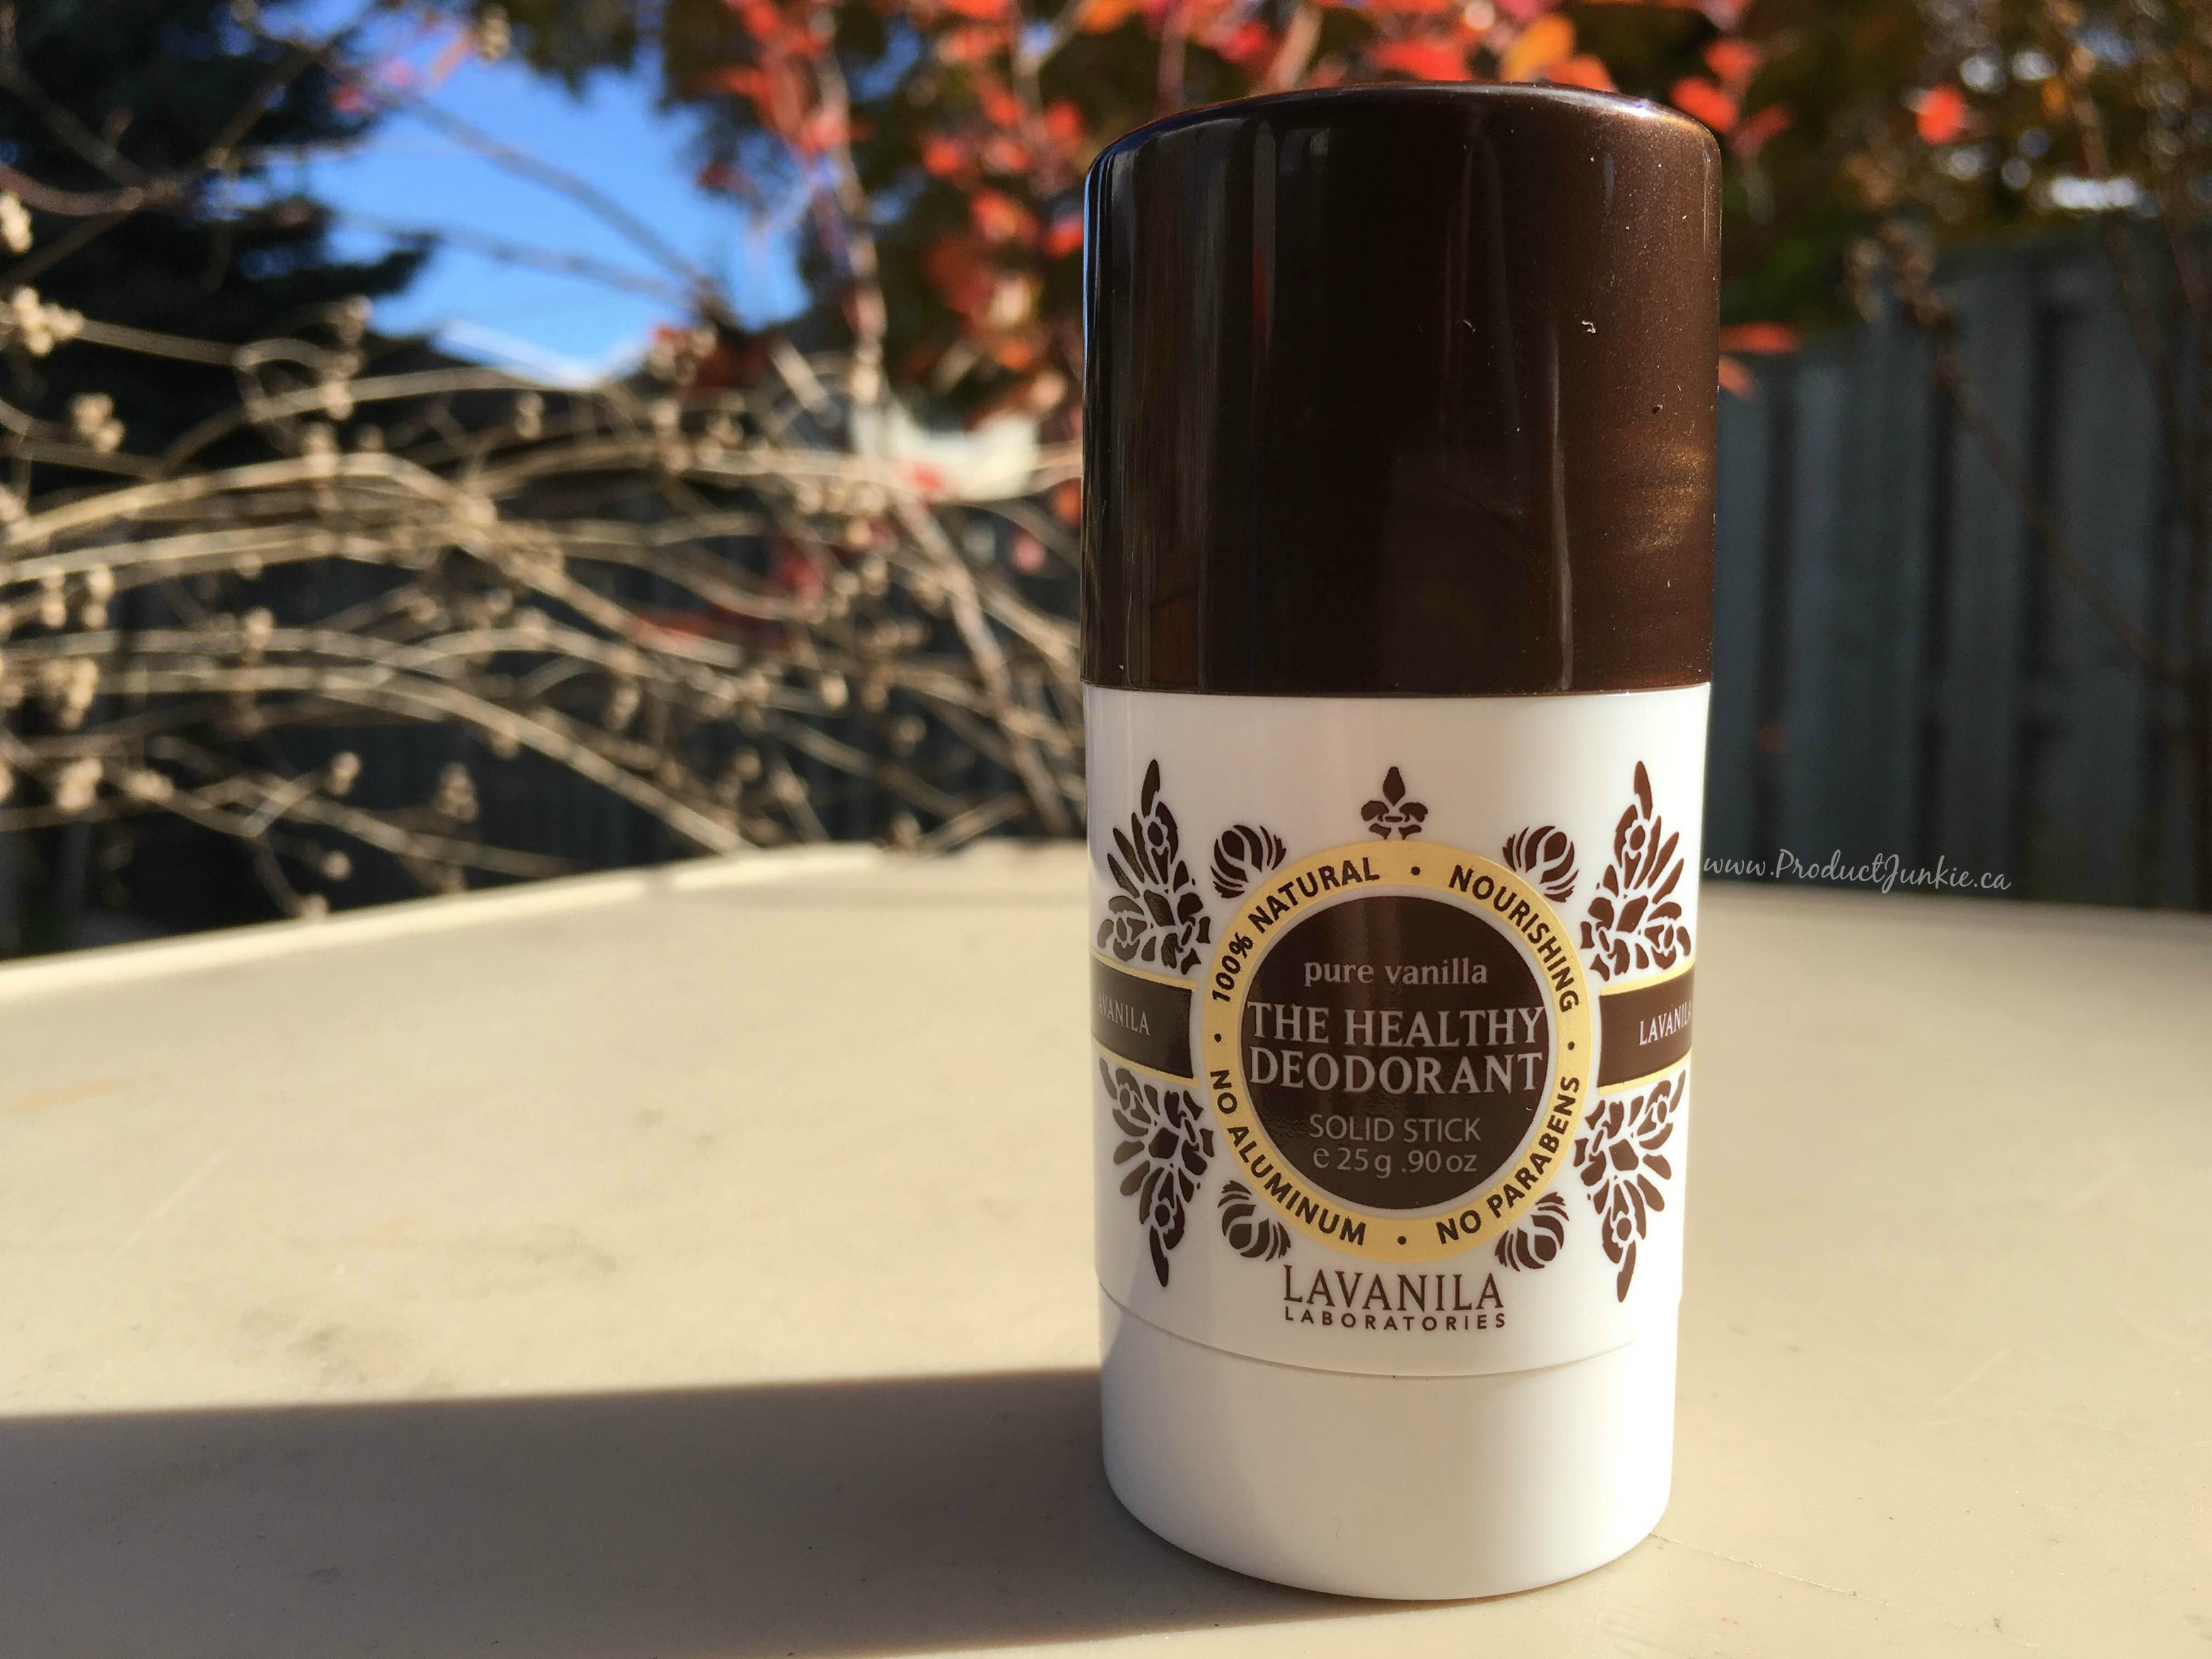 Lavanila Pure Vanilla: The Healthy Deodorant Review & Giveaway